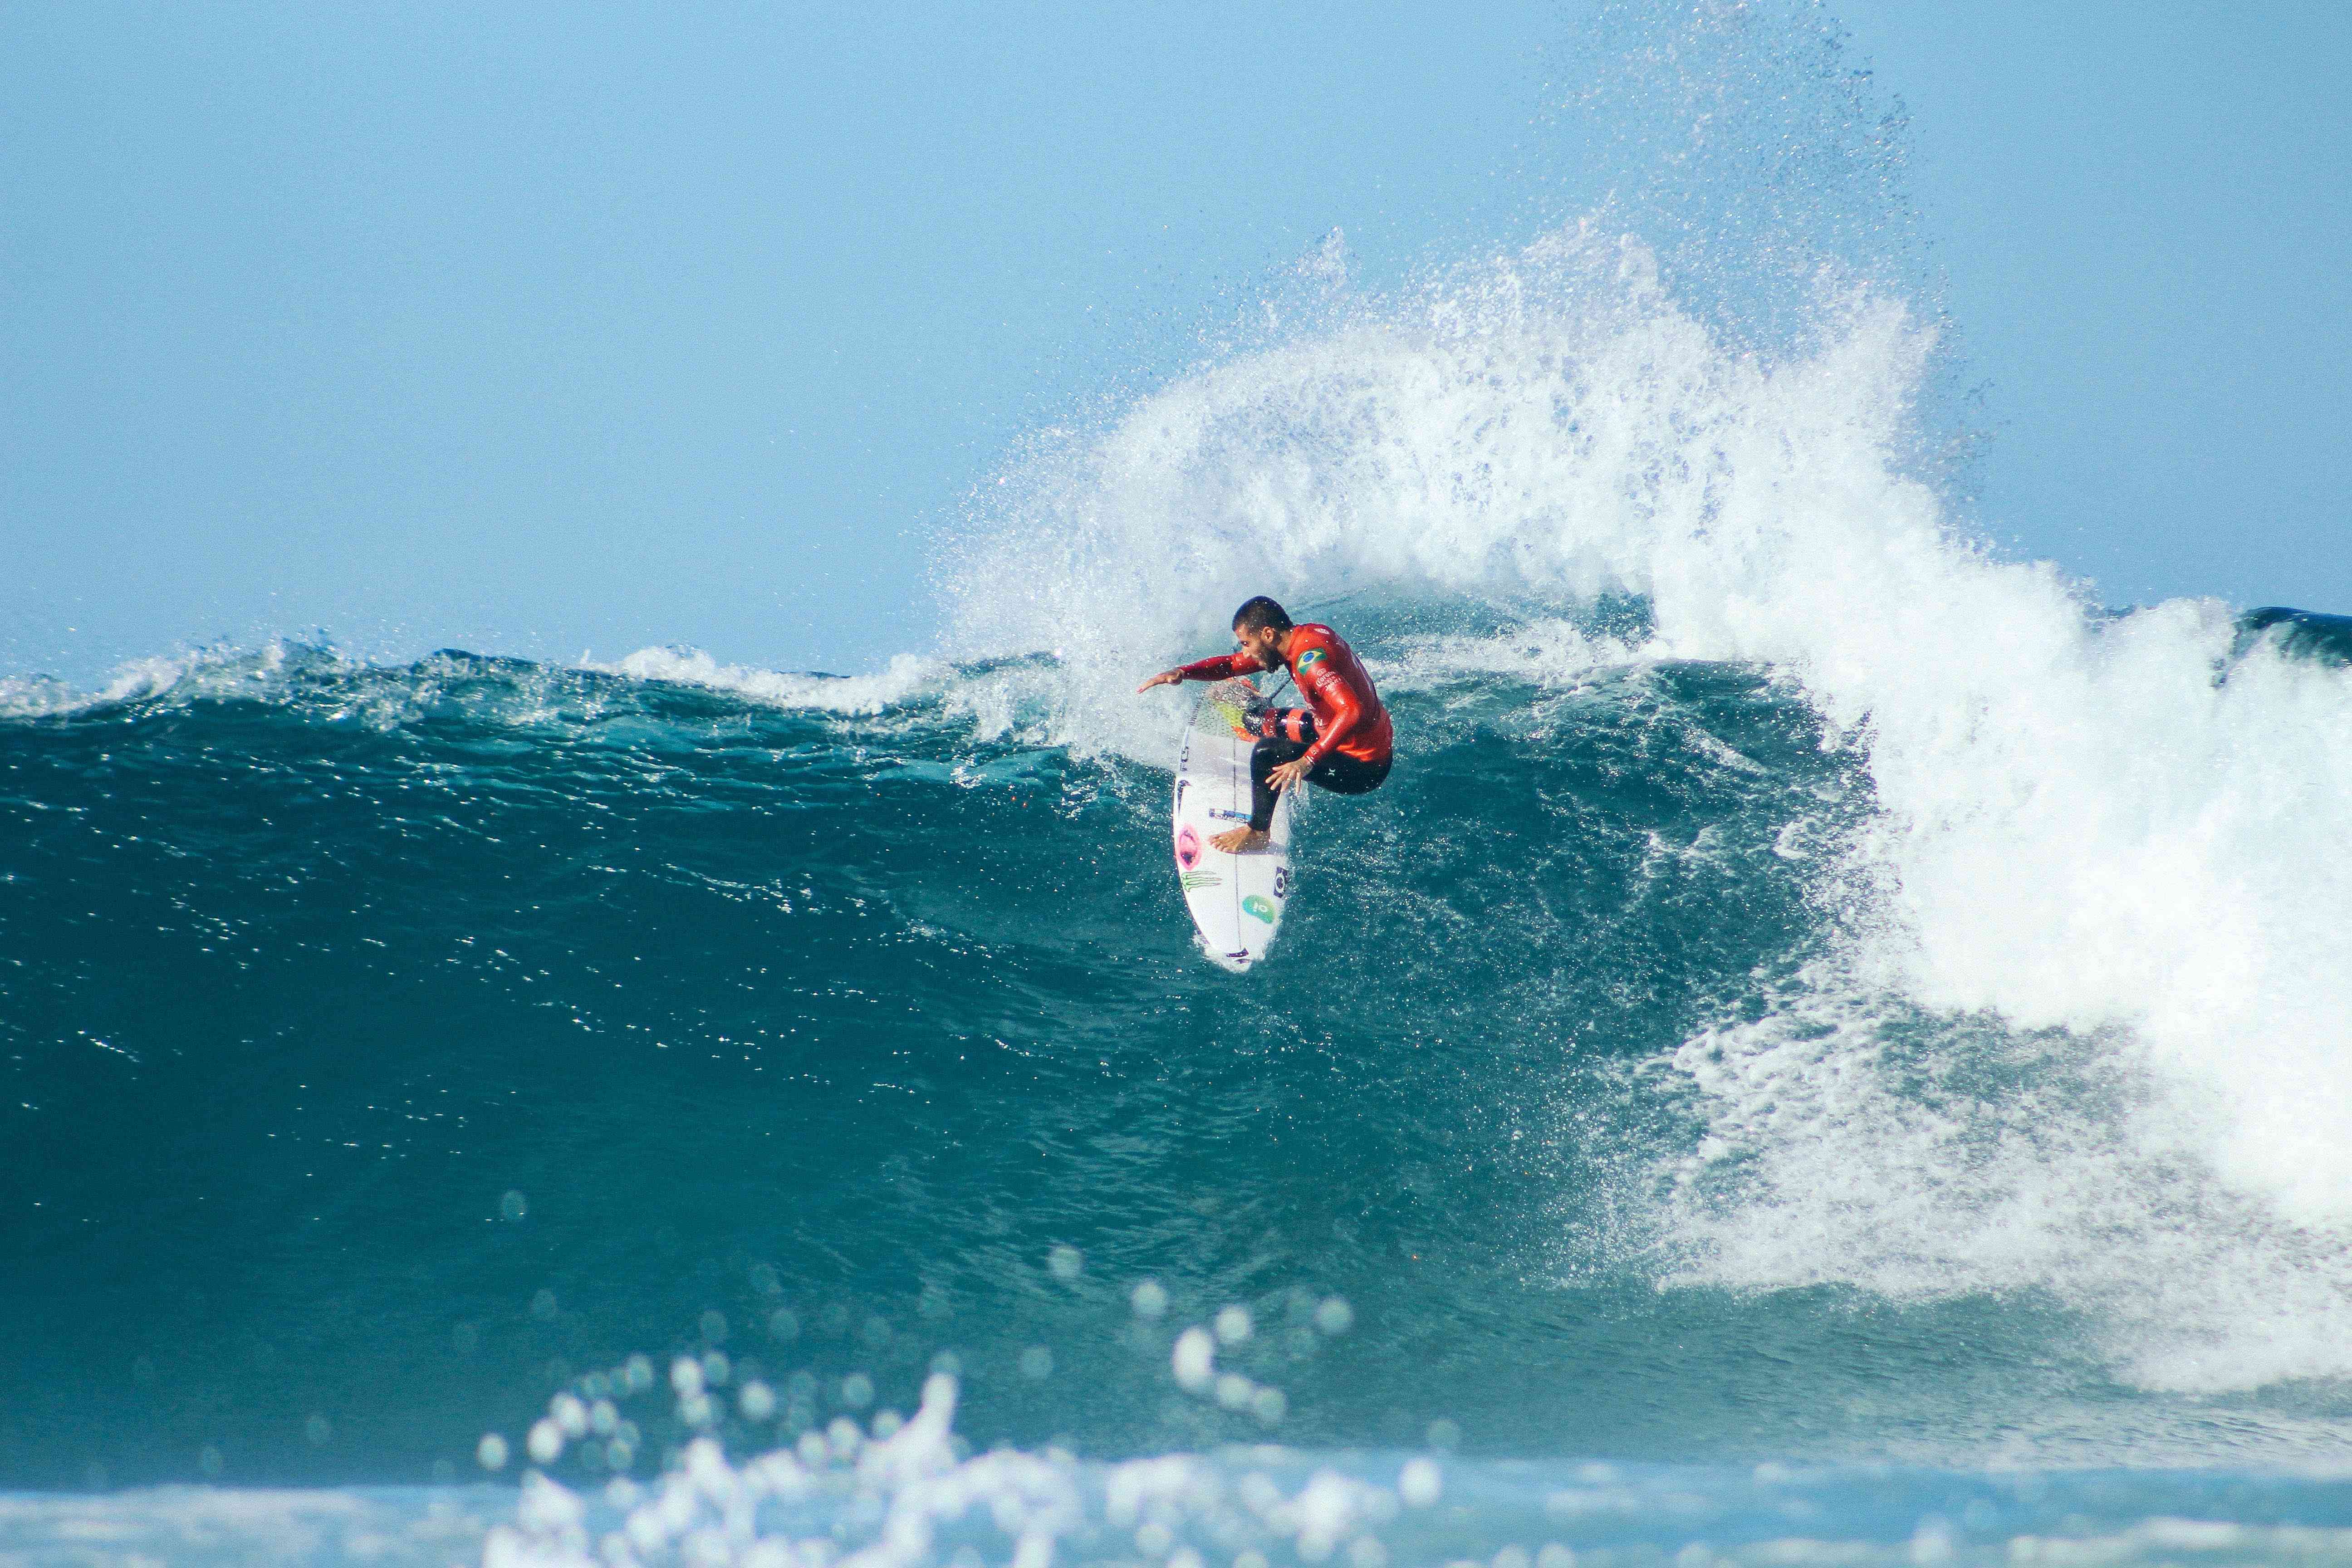 a man in a red rash guard catches a waves